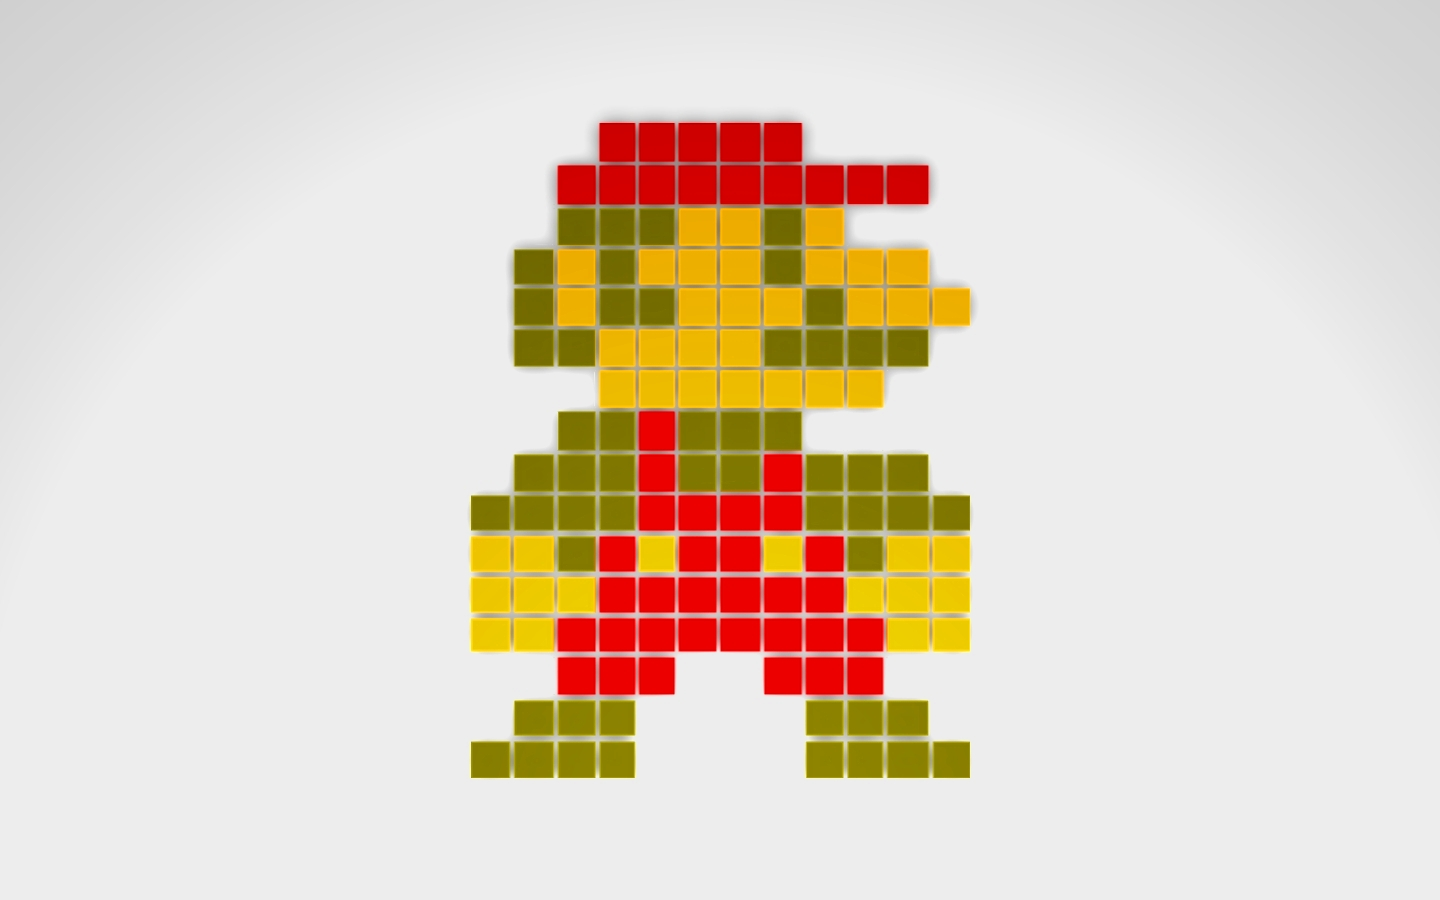 http://3.bp.blogspot.com/-eyUZpkLckT4/T8p5hhkcoeI/AAAAAAAAA5Y/3GXuEoRJP1c/s1600/8+bit+mario+classic+wallpaper+background.jpg